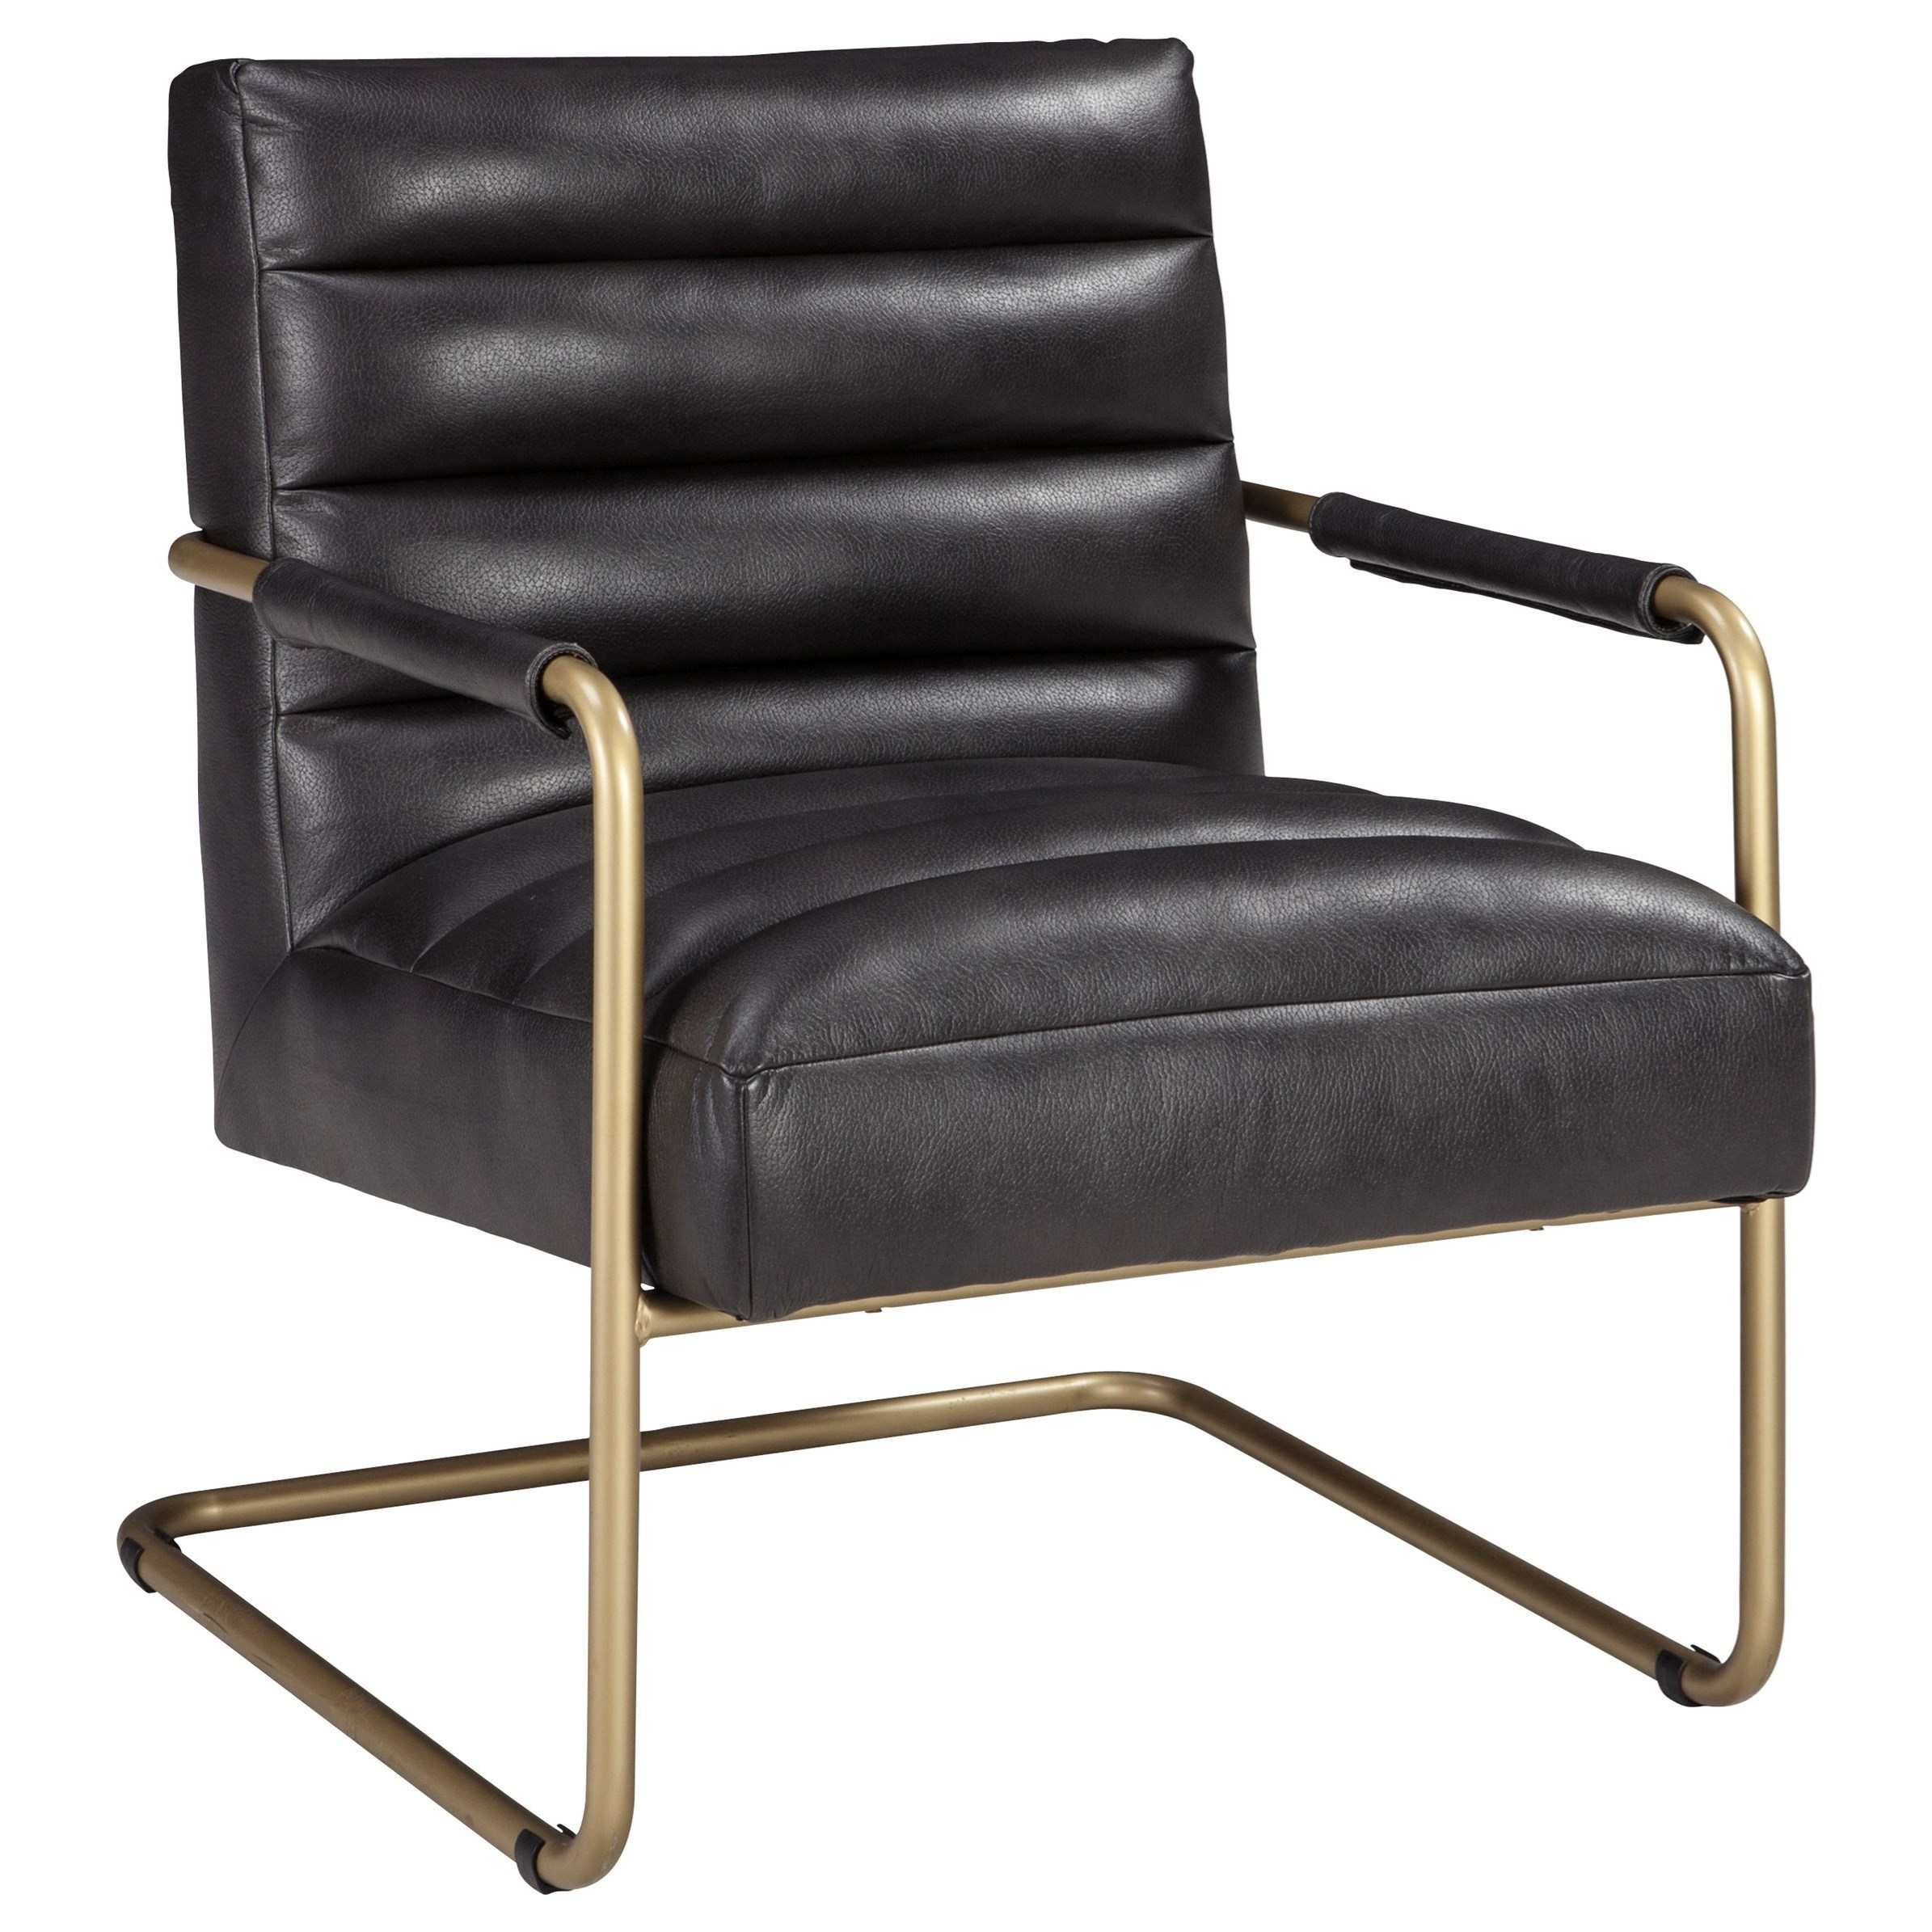 Gold Finish Metal Arm Accent Chair with Black Faux Leather Upholstery